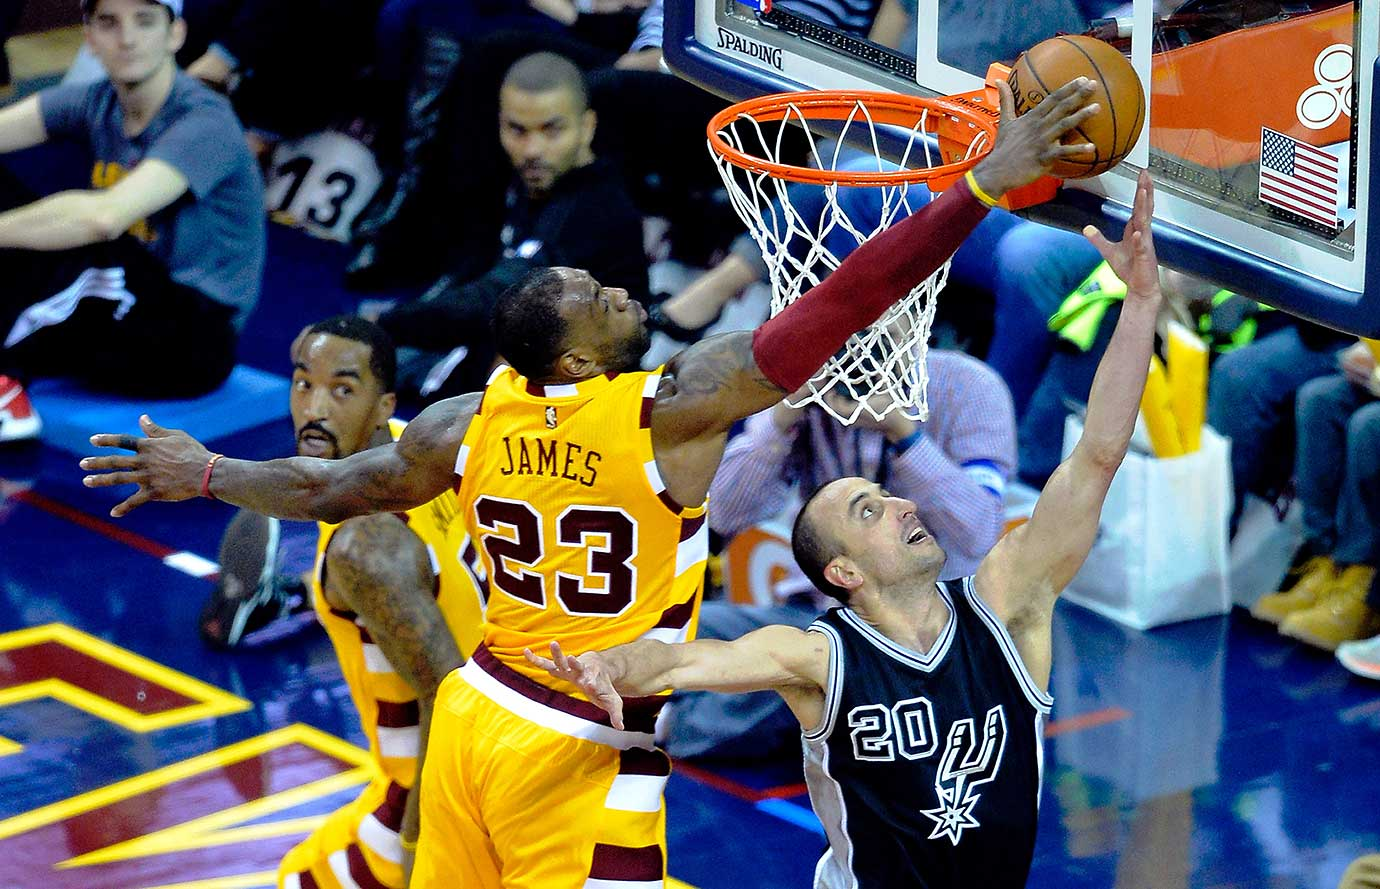 LeBron James blocks a shot attempt by San Antonio Spurs guard Manu Ginobili at Quicken Loans Arena.